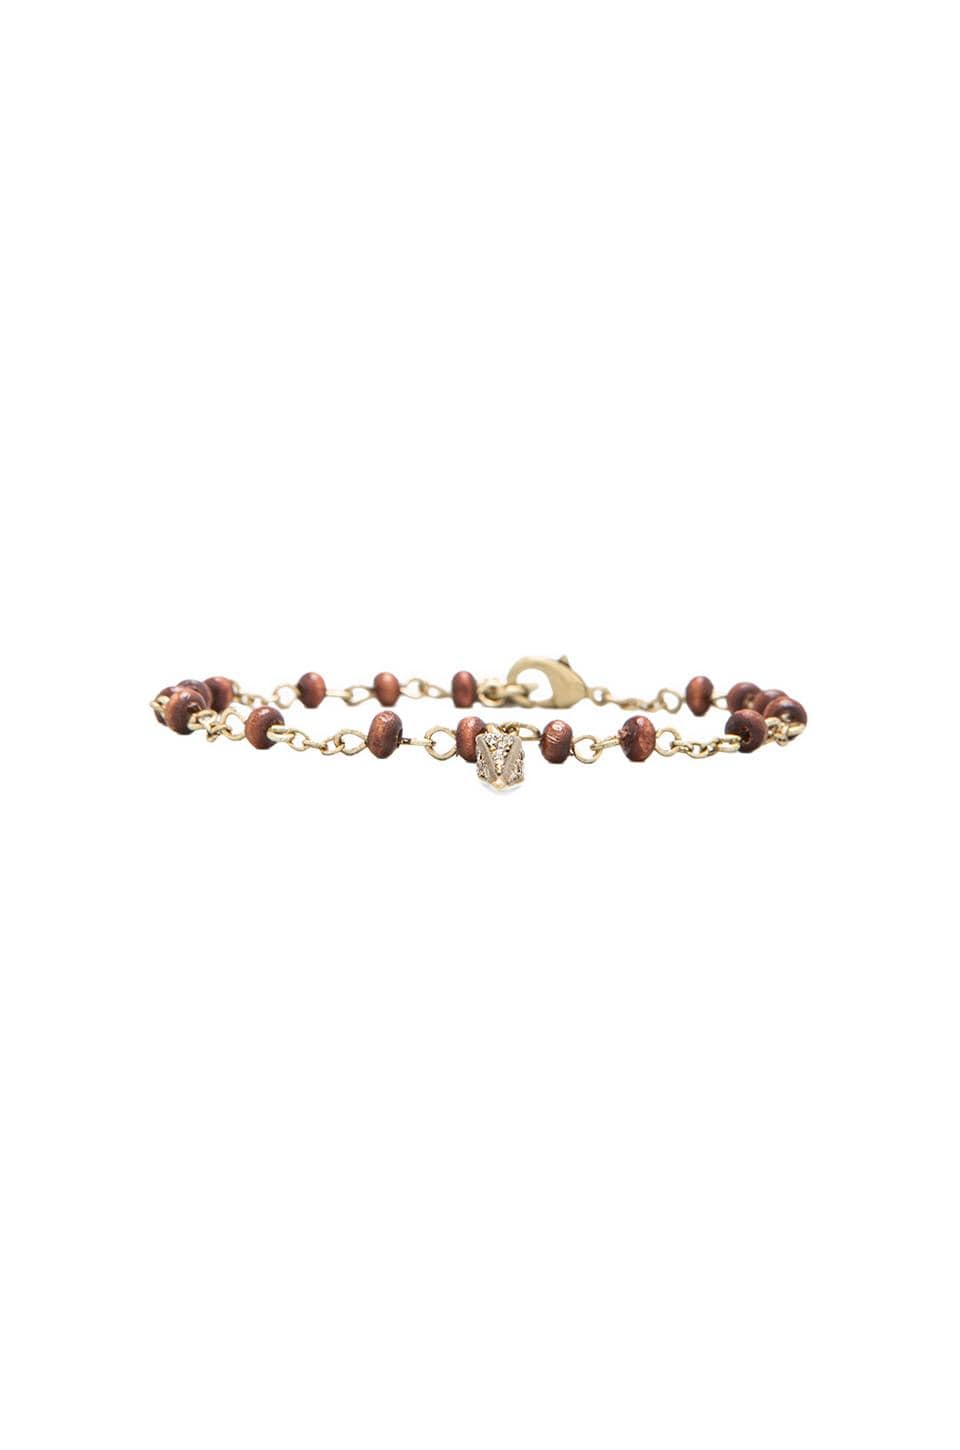 House of Harlow 1960 House of Harlow Wooden Kharma Bead Bracelet in Gold